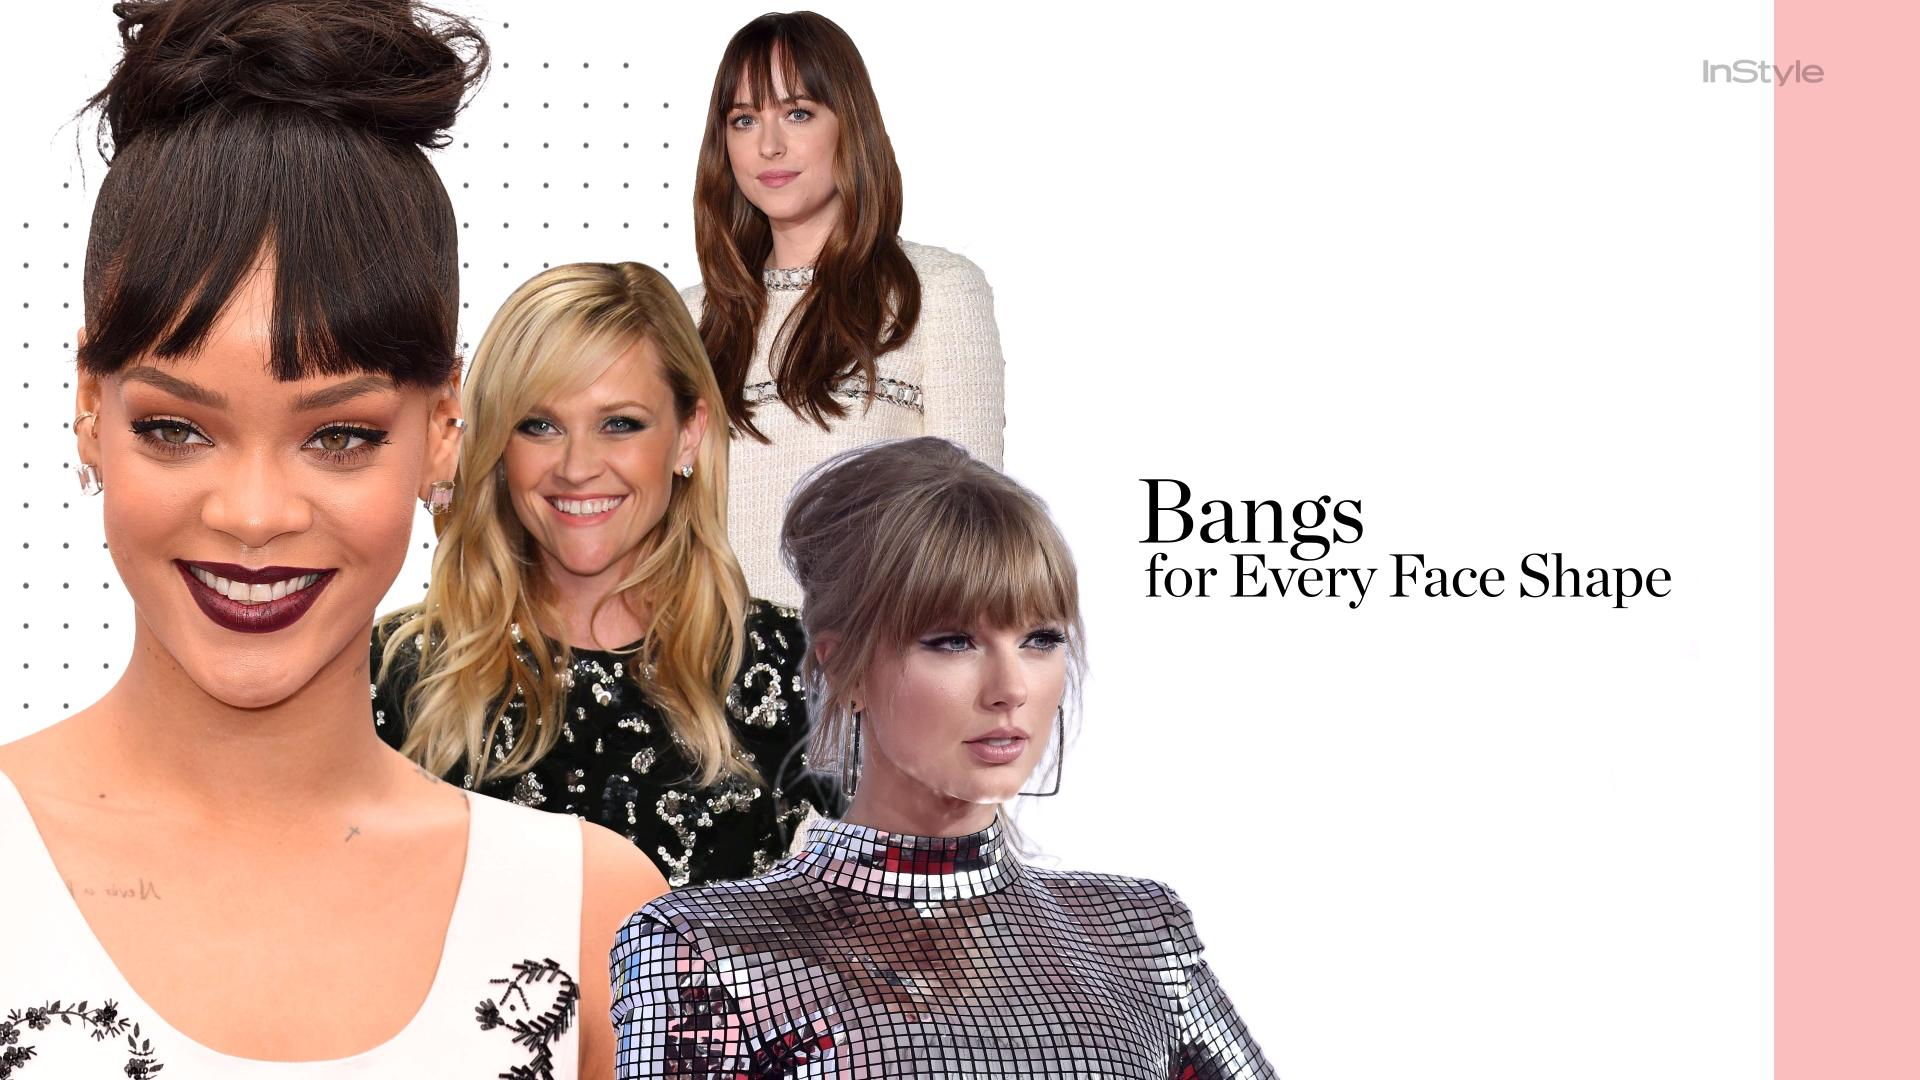 How To Style Bangs 8 Tips On How To Make Your Bangs Look Better Instyle